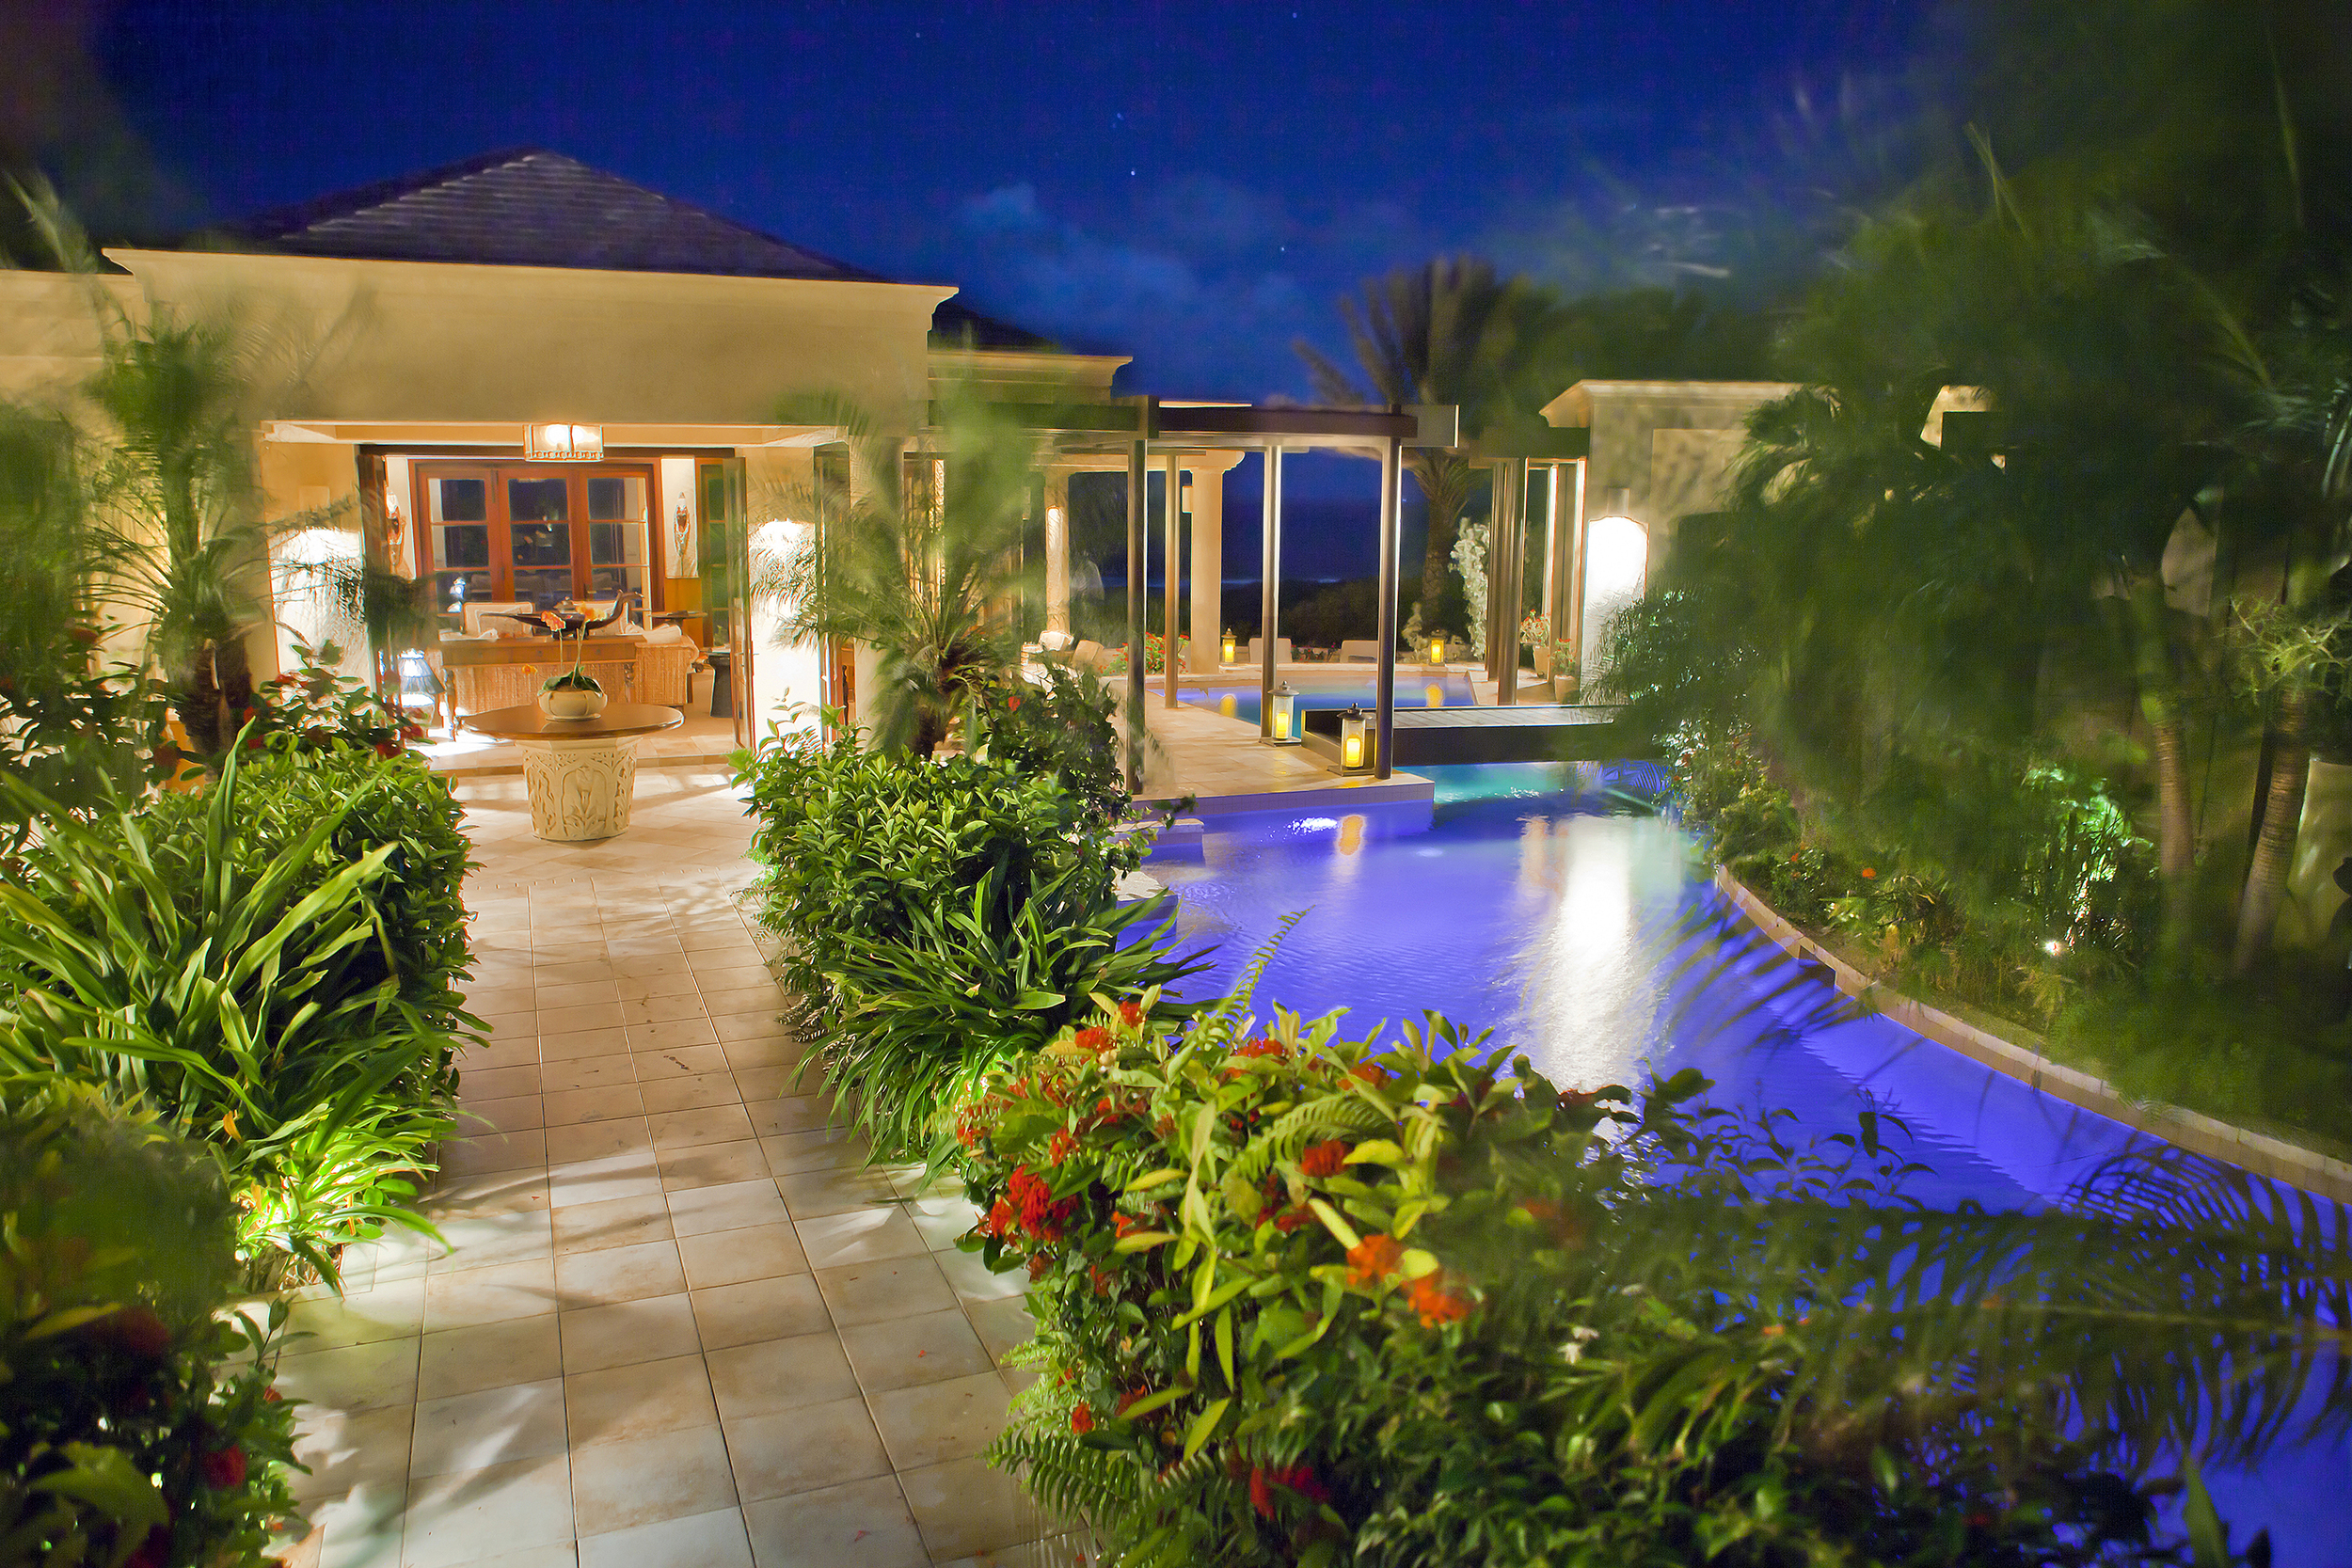 LED lights allow you set themood by changing the color of the pool lights or set different light shows.